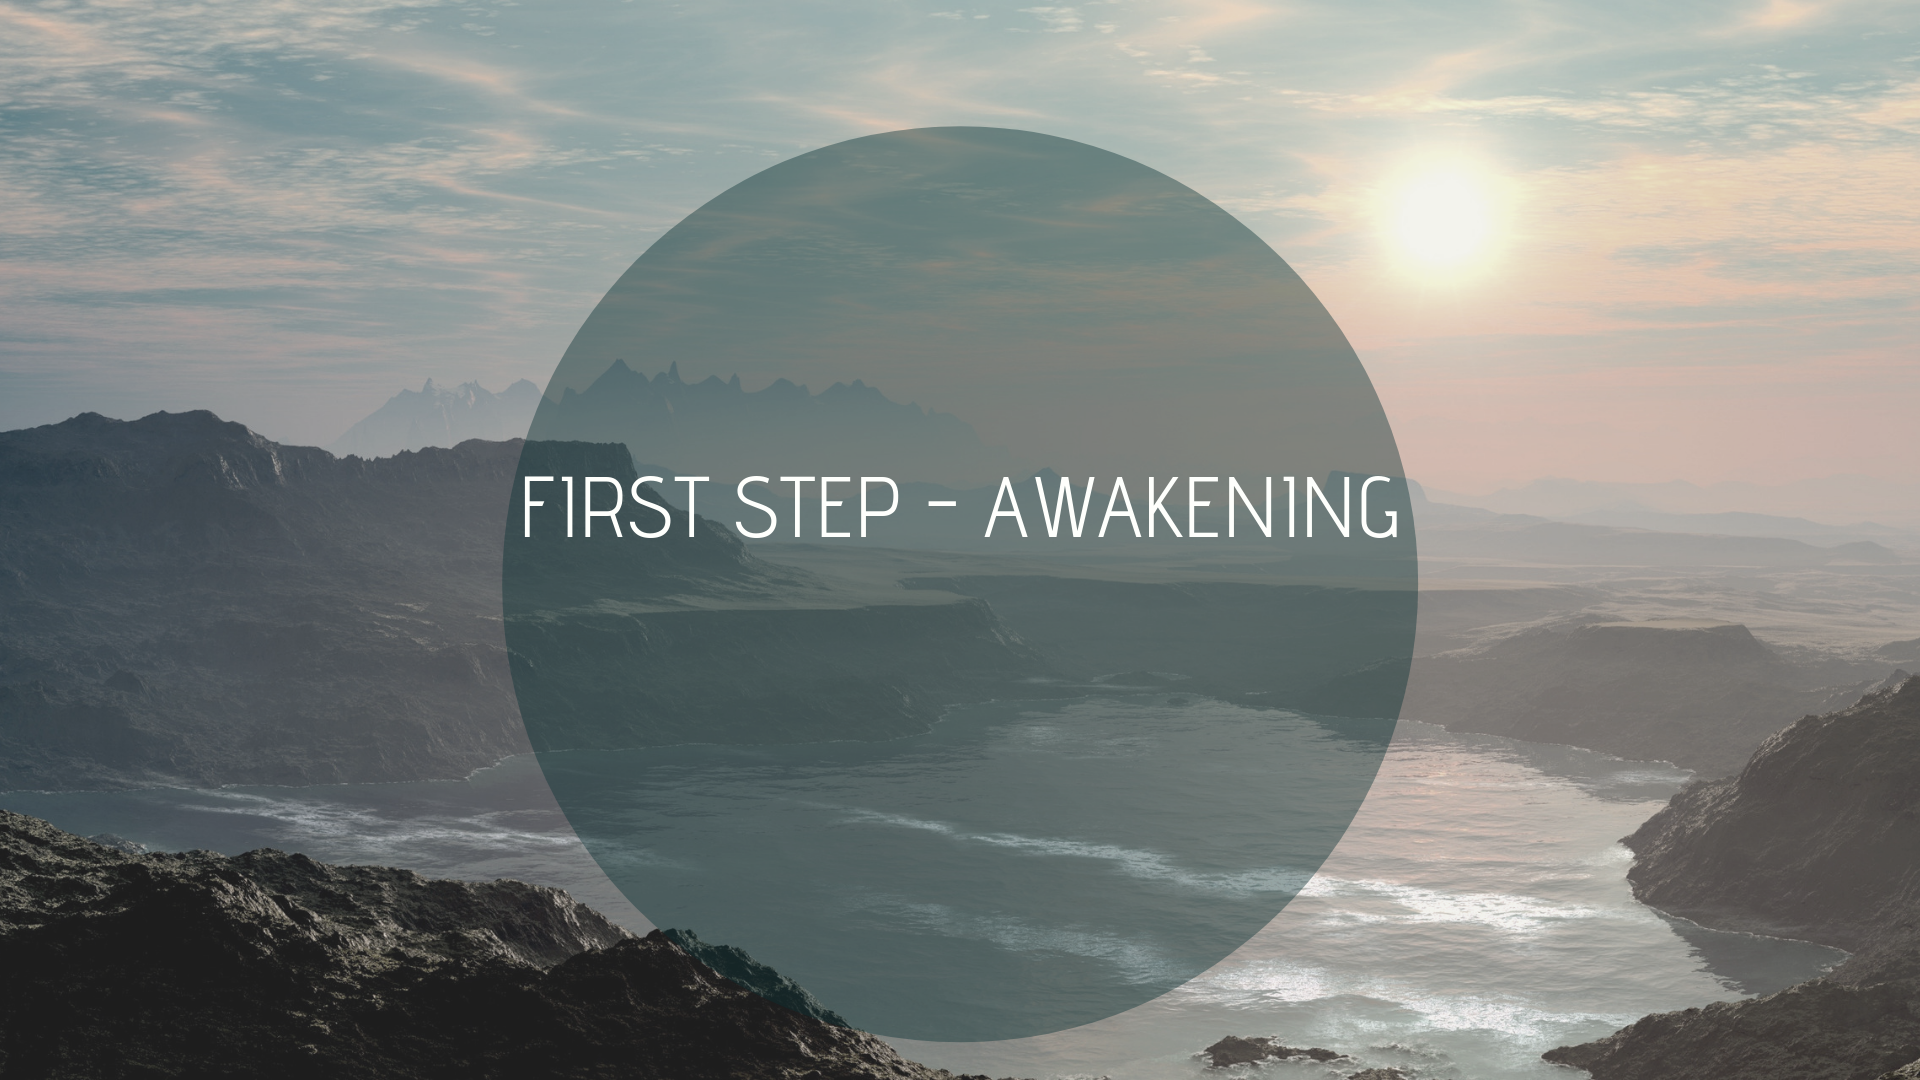 First Step - Awakening, Awakening, Mentoring, Coaching, Spiritual awakening